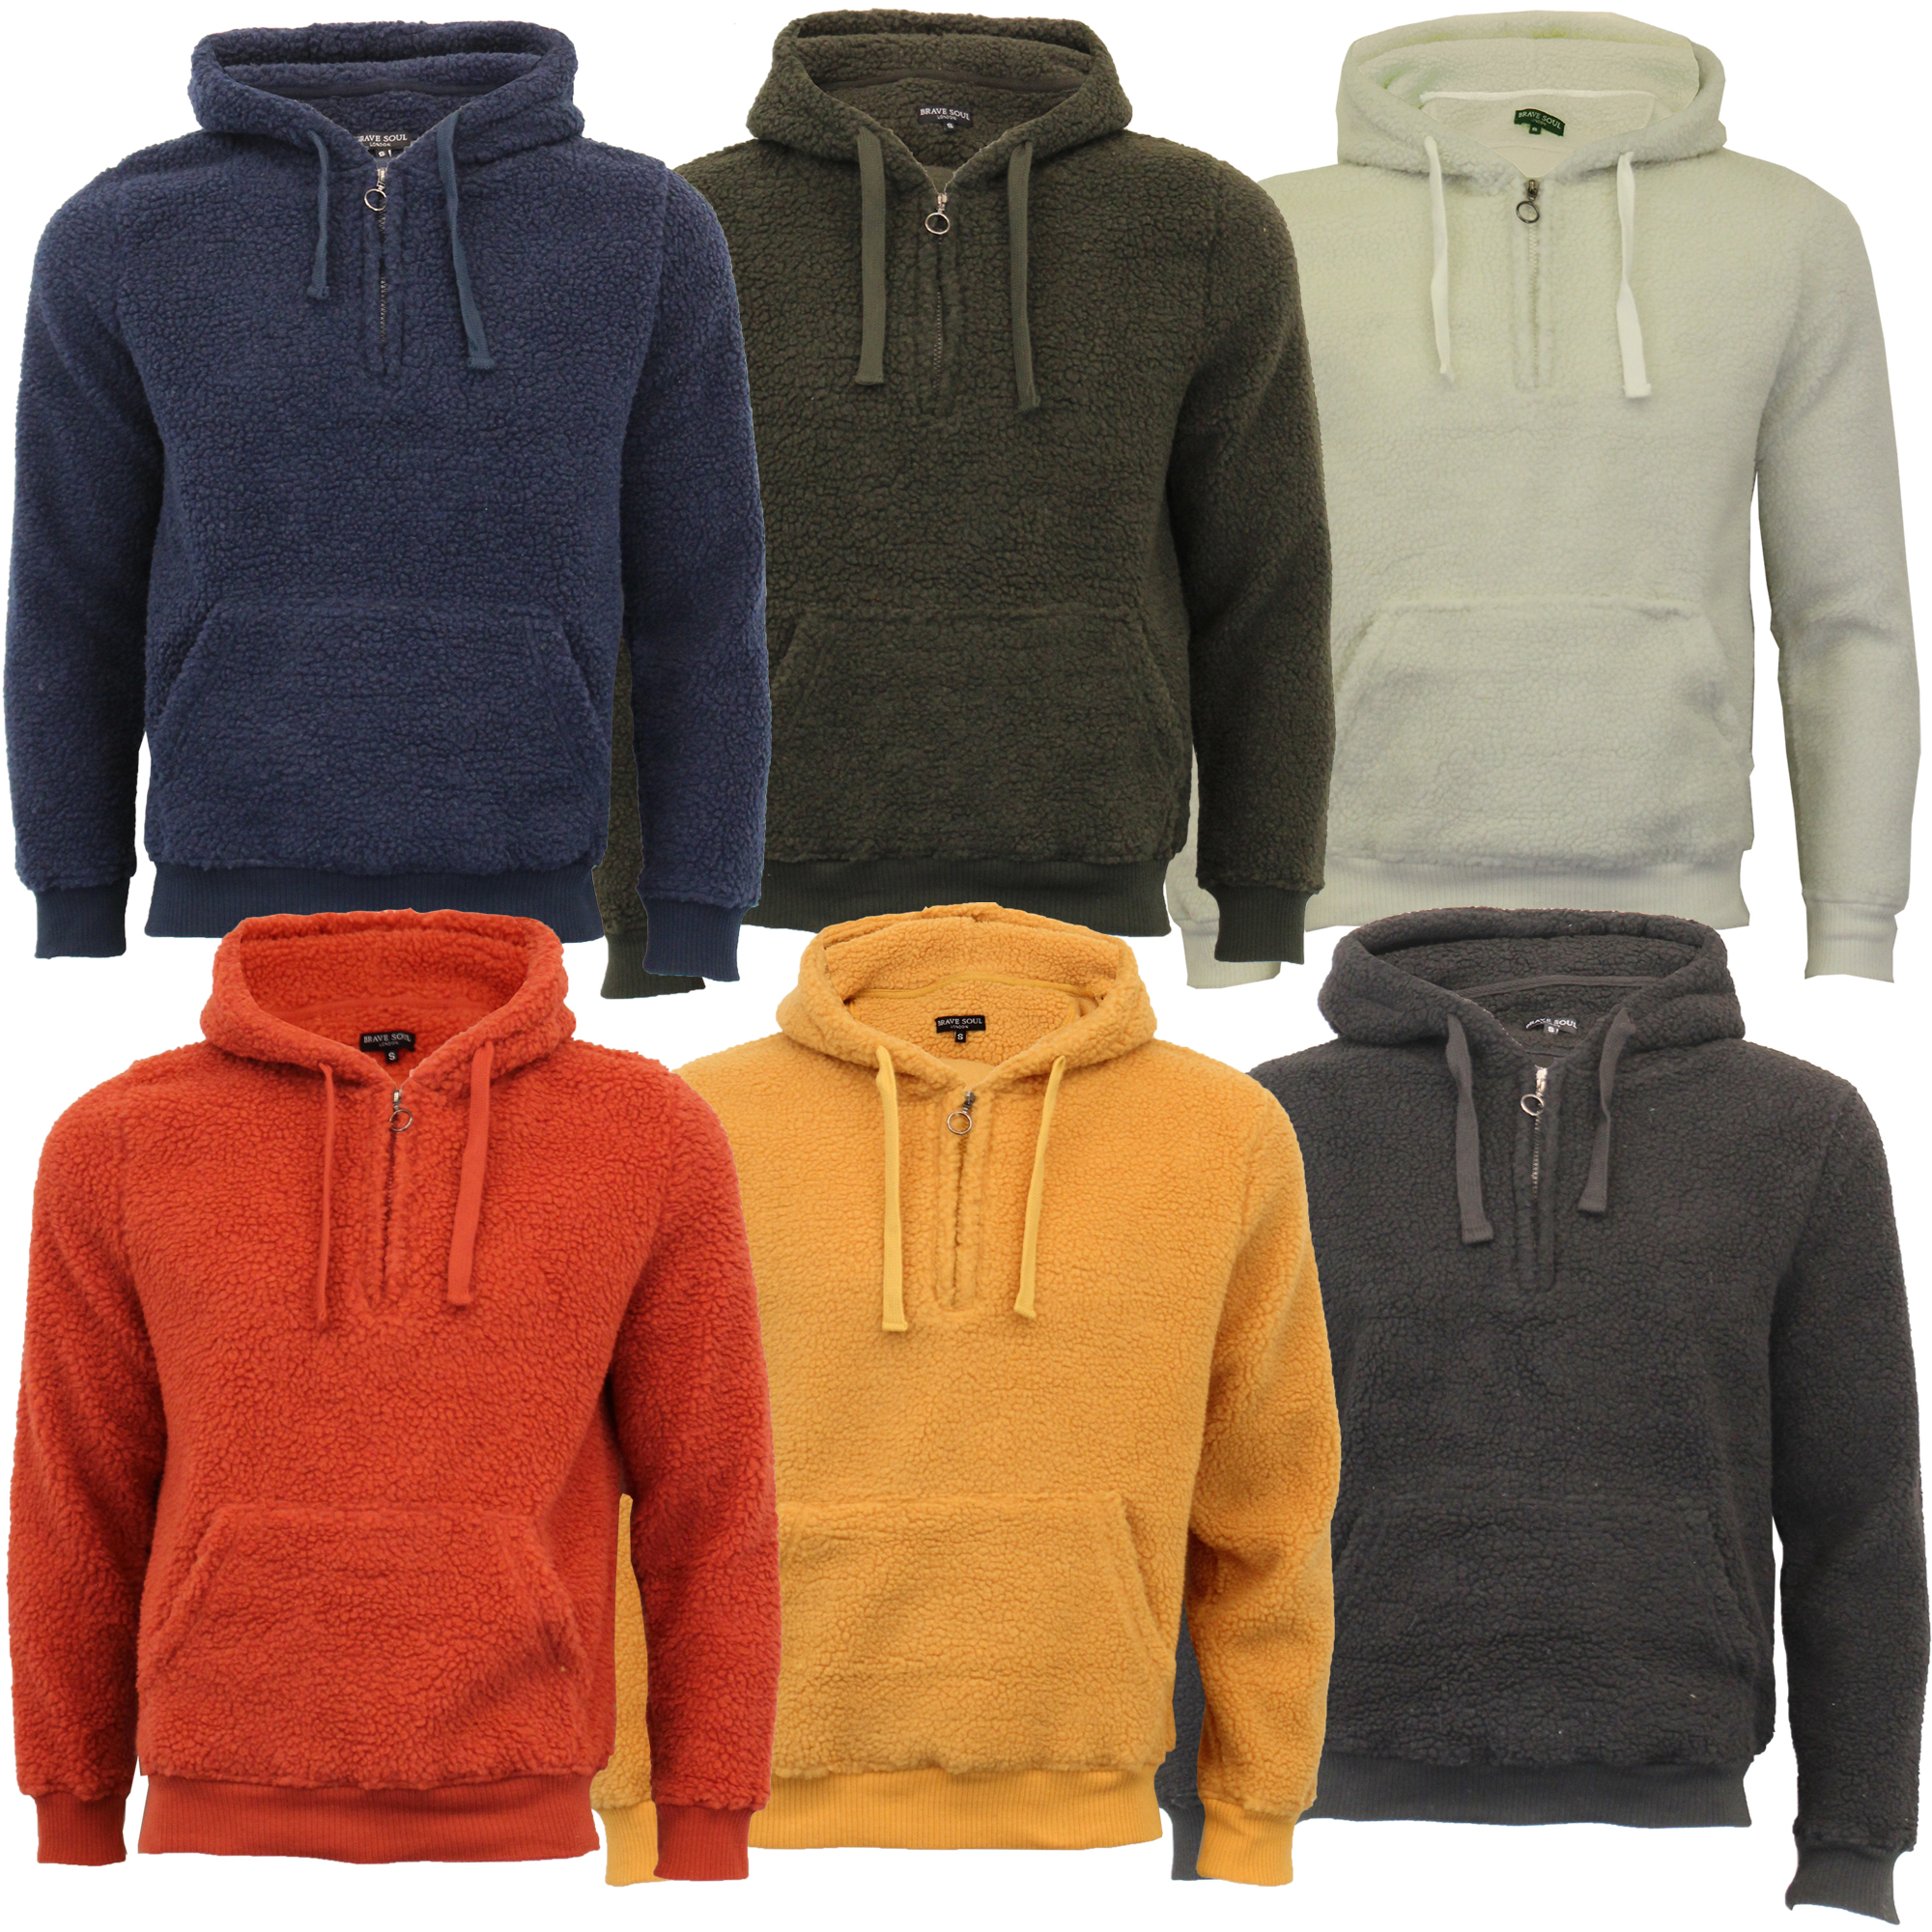 Mens-Borg-Sherpa-Fleece-Sweatshirt-Brave-Soul-DAIM-Over-The-Head-Hooded-Top-Warm thumbnail 4